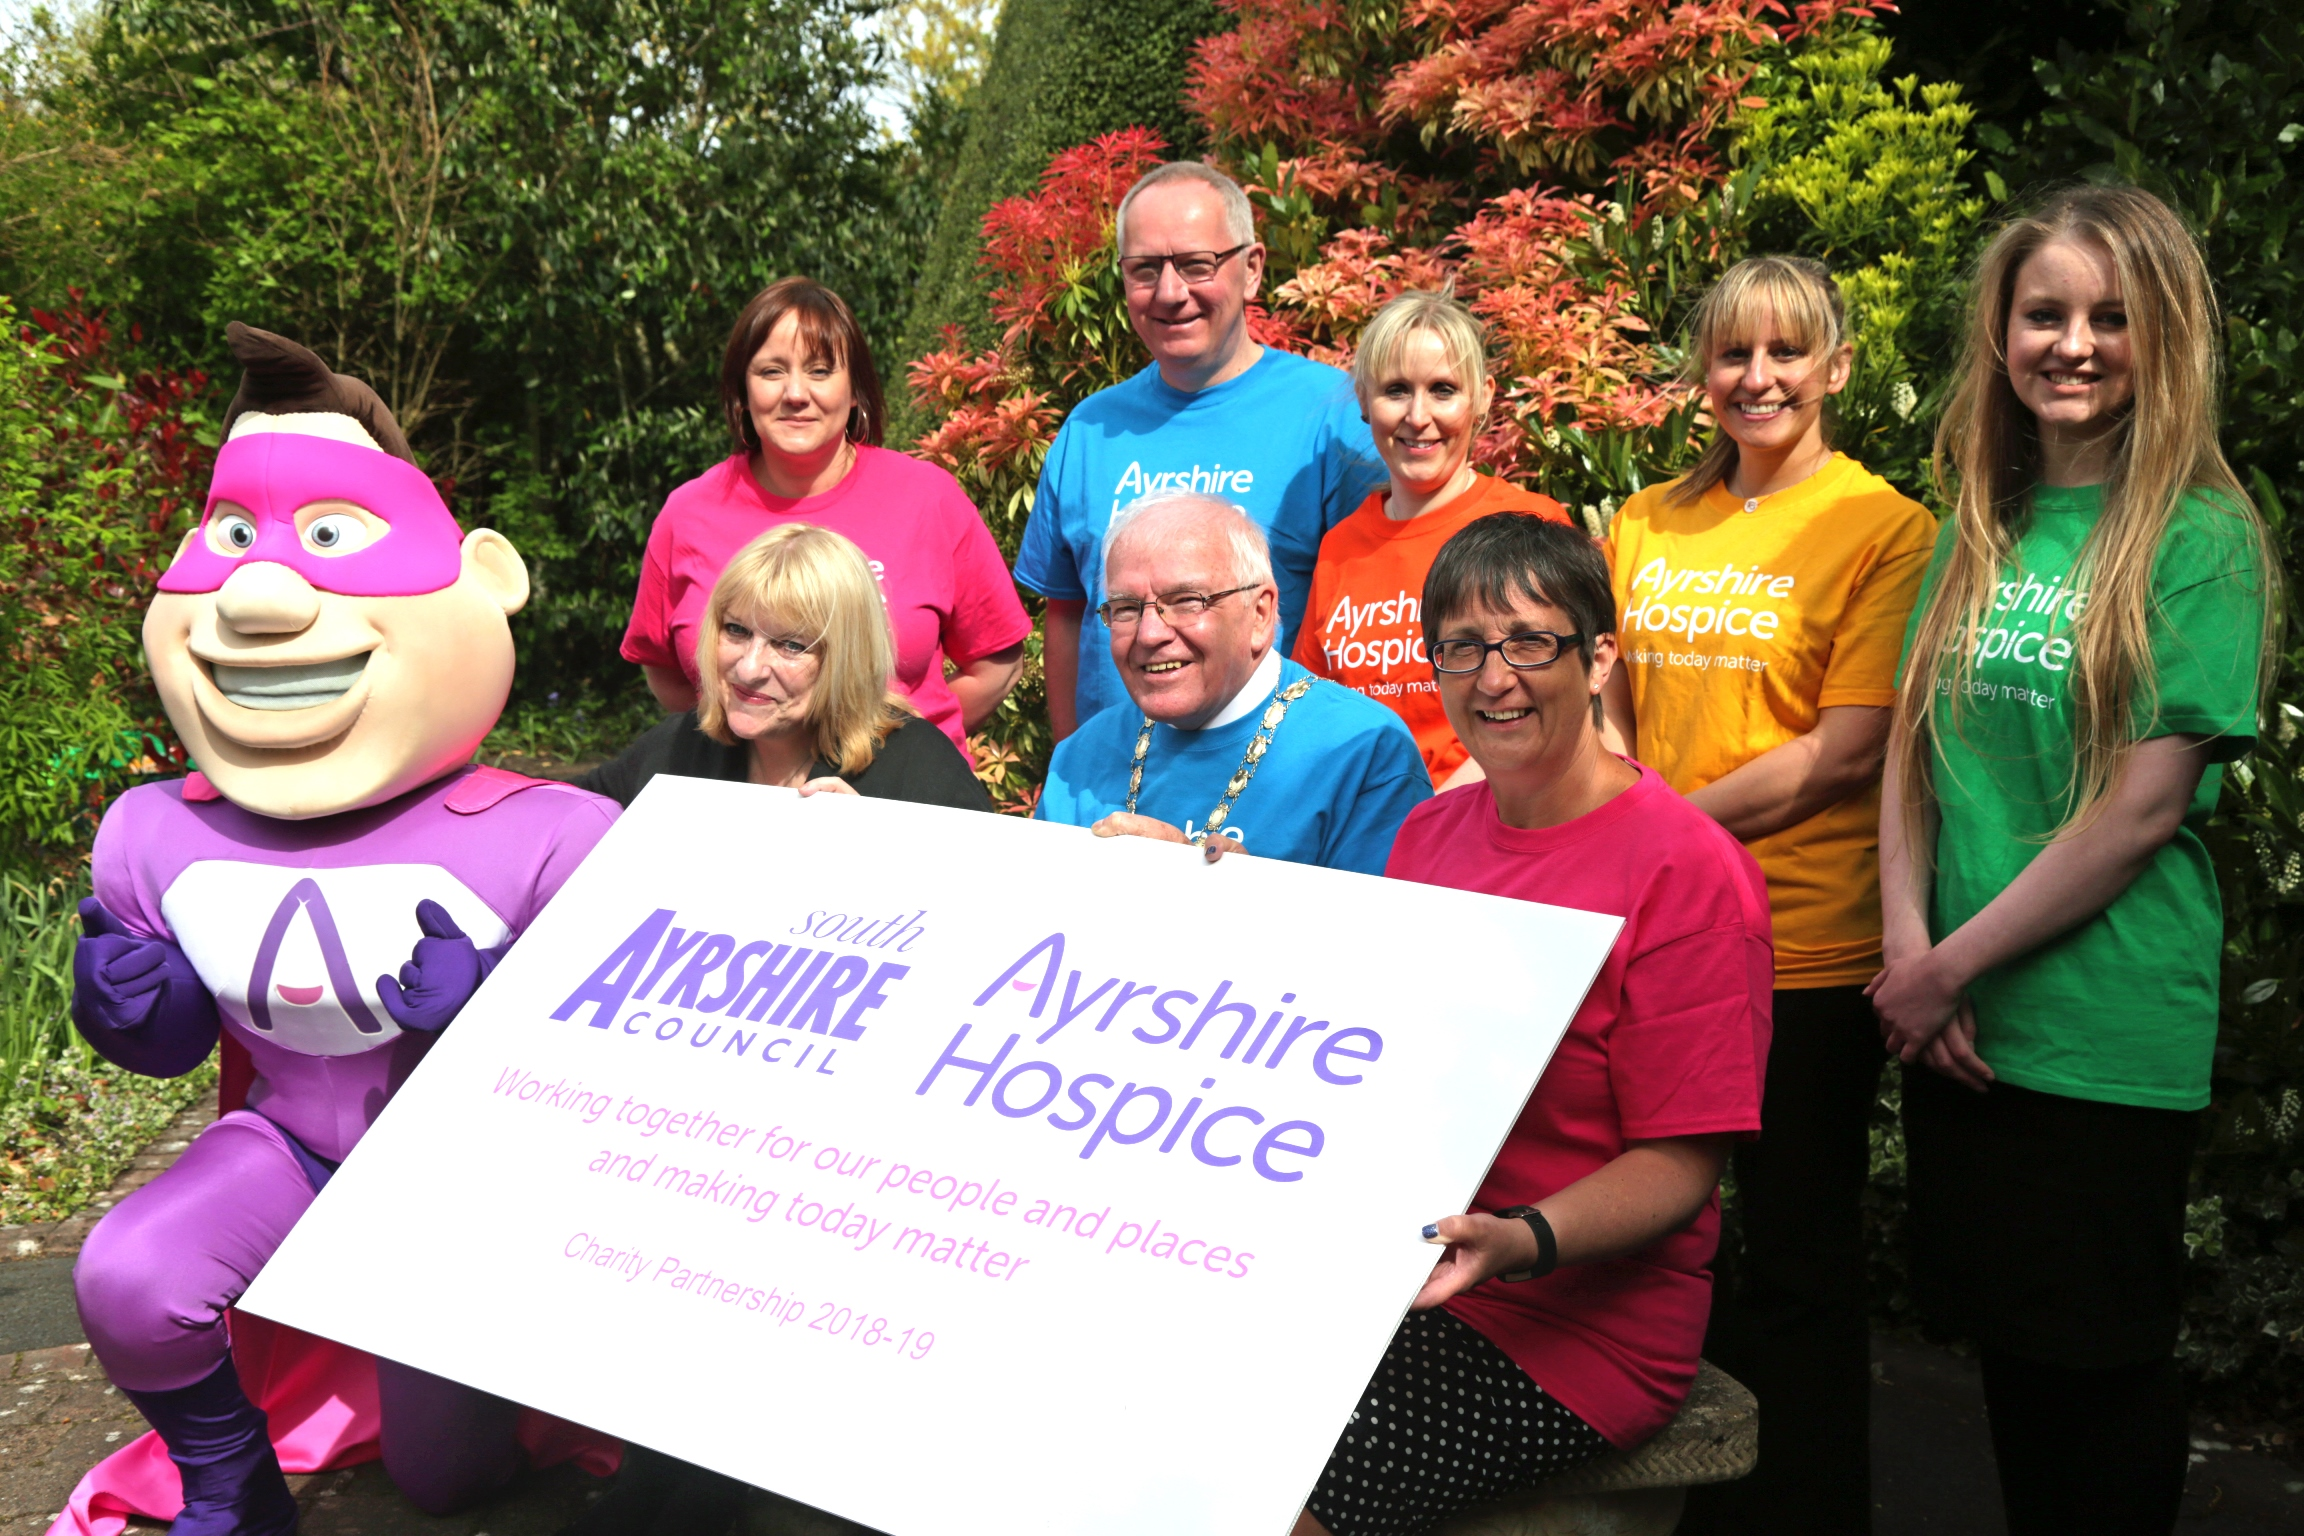 South Ayrshire Council supports Ayrshire Hospice